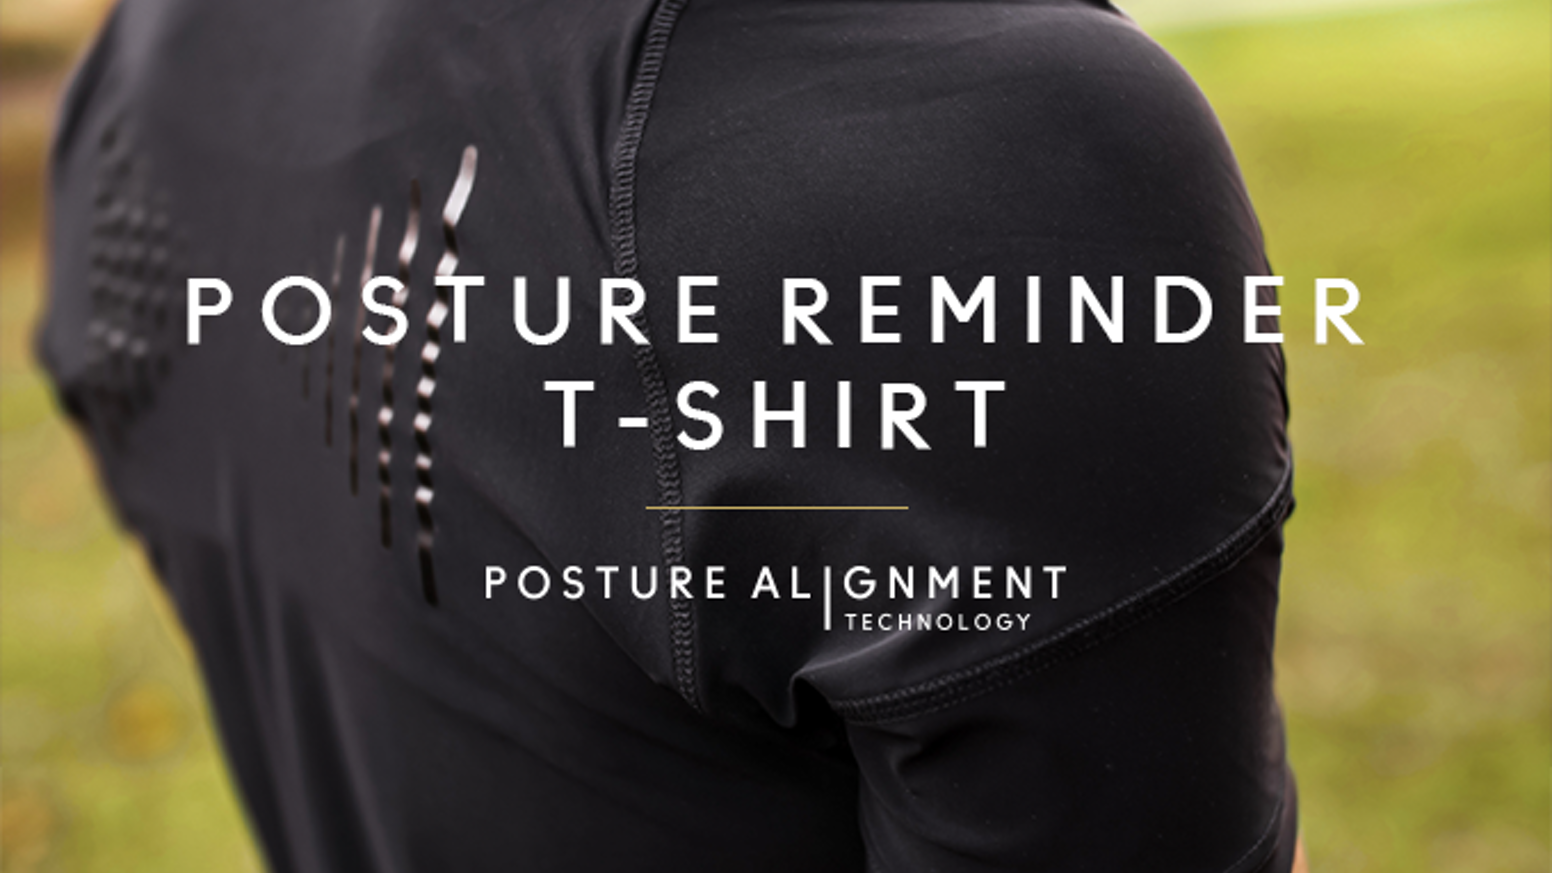 A unique ultra light T-shirt with Posture Alignment Technology that improves your posture while running, working or just slouching.